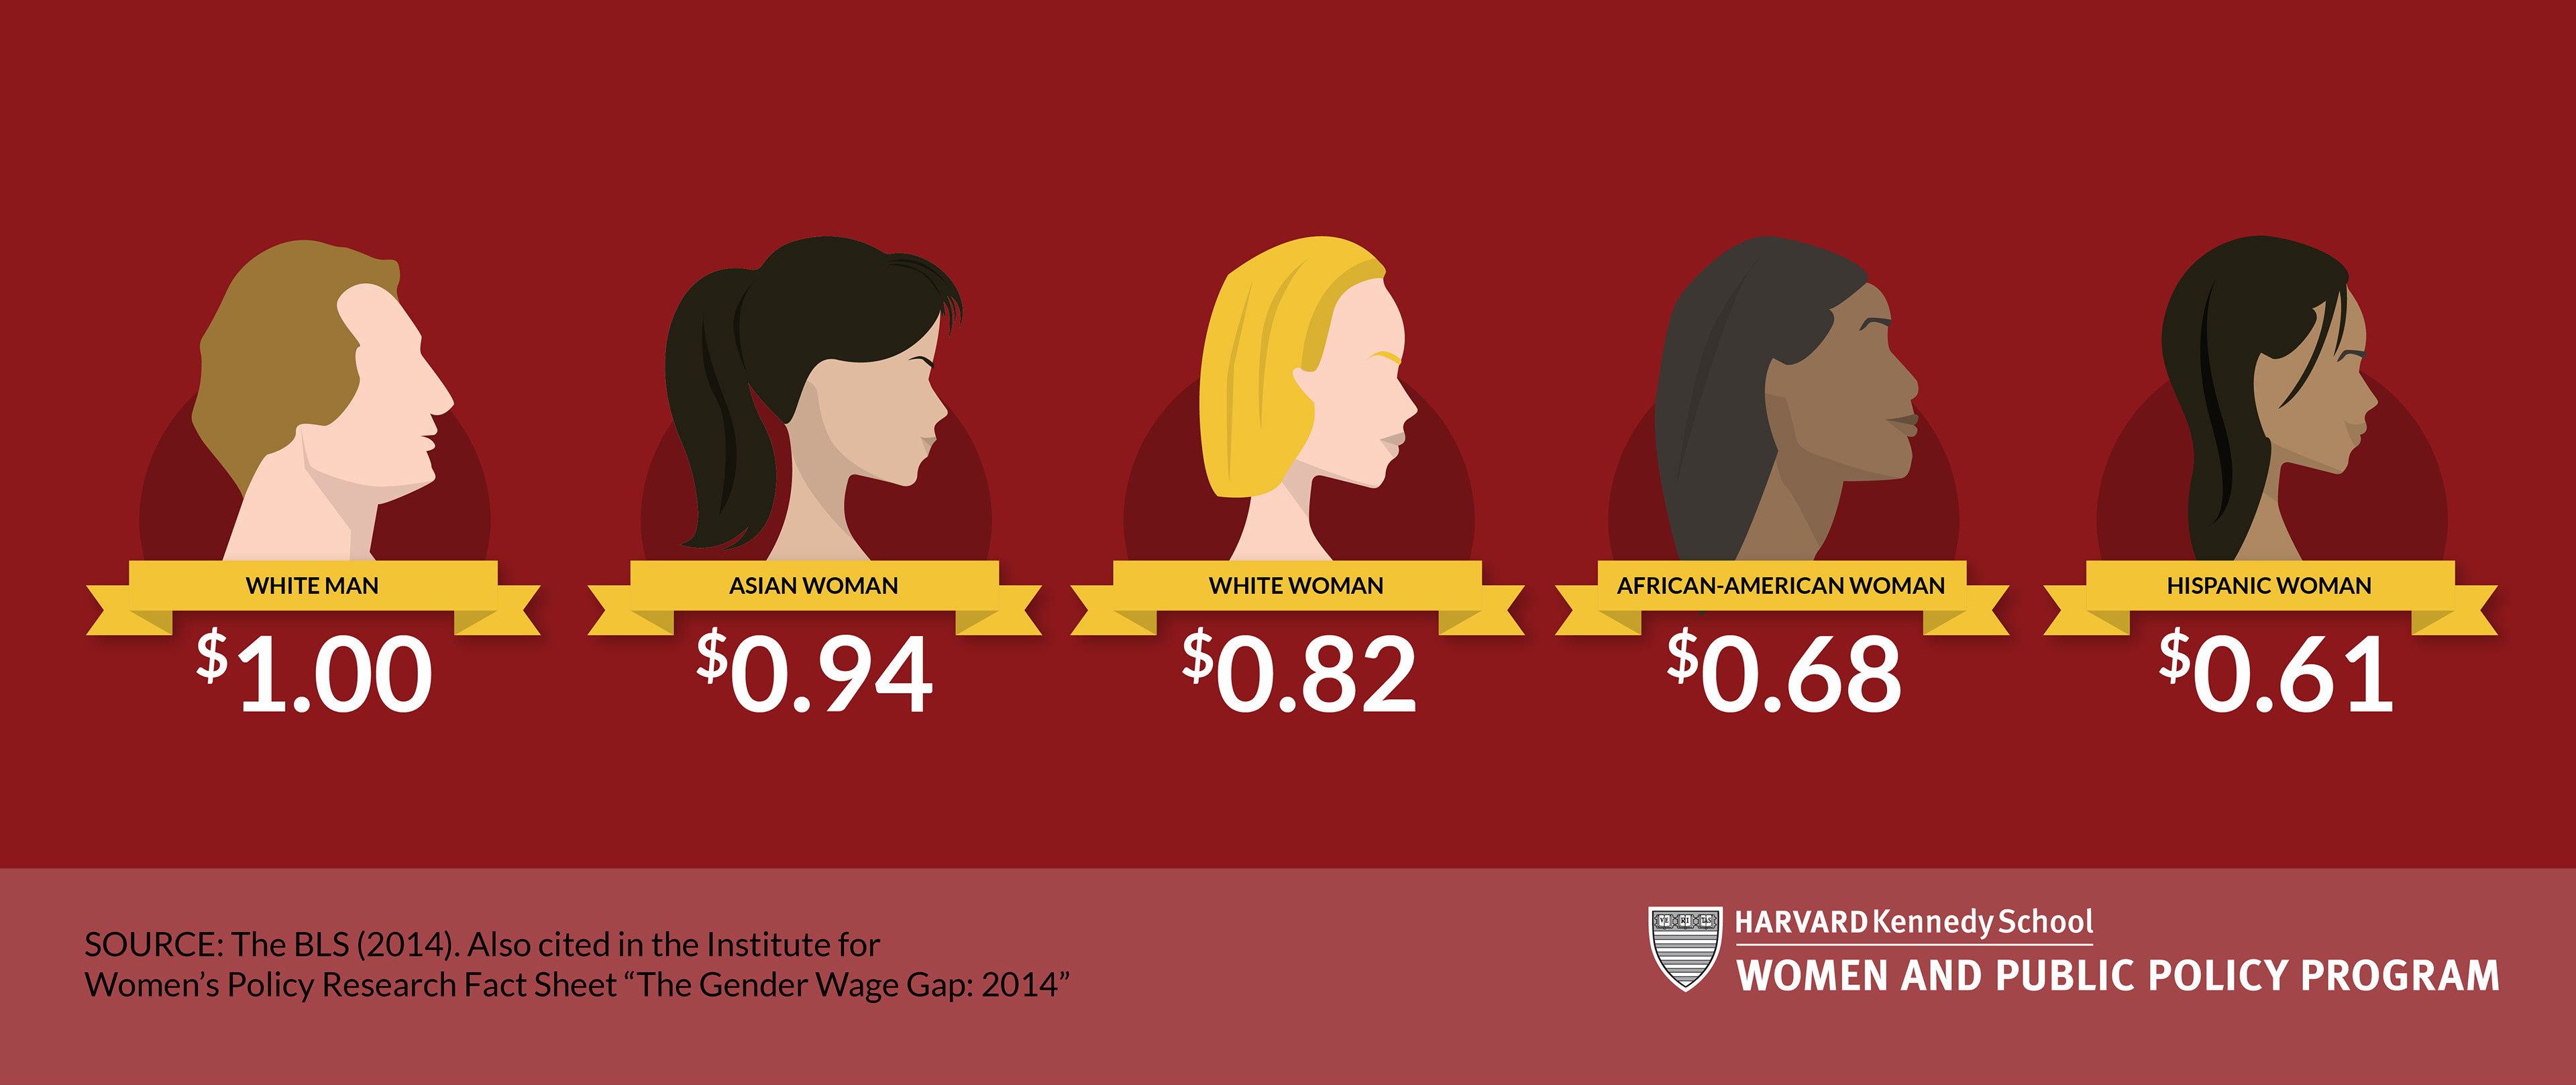 gender wage gap in america The october revolution (1917) and the dissolution of the soviet union in 1991, have shaped the developments in the gender wage gap.